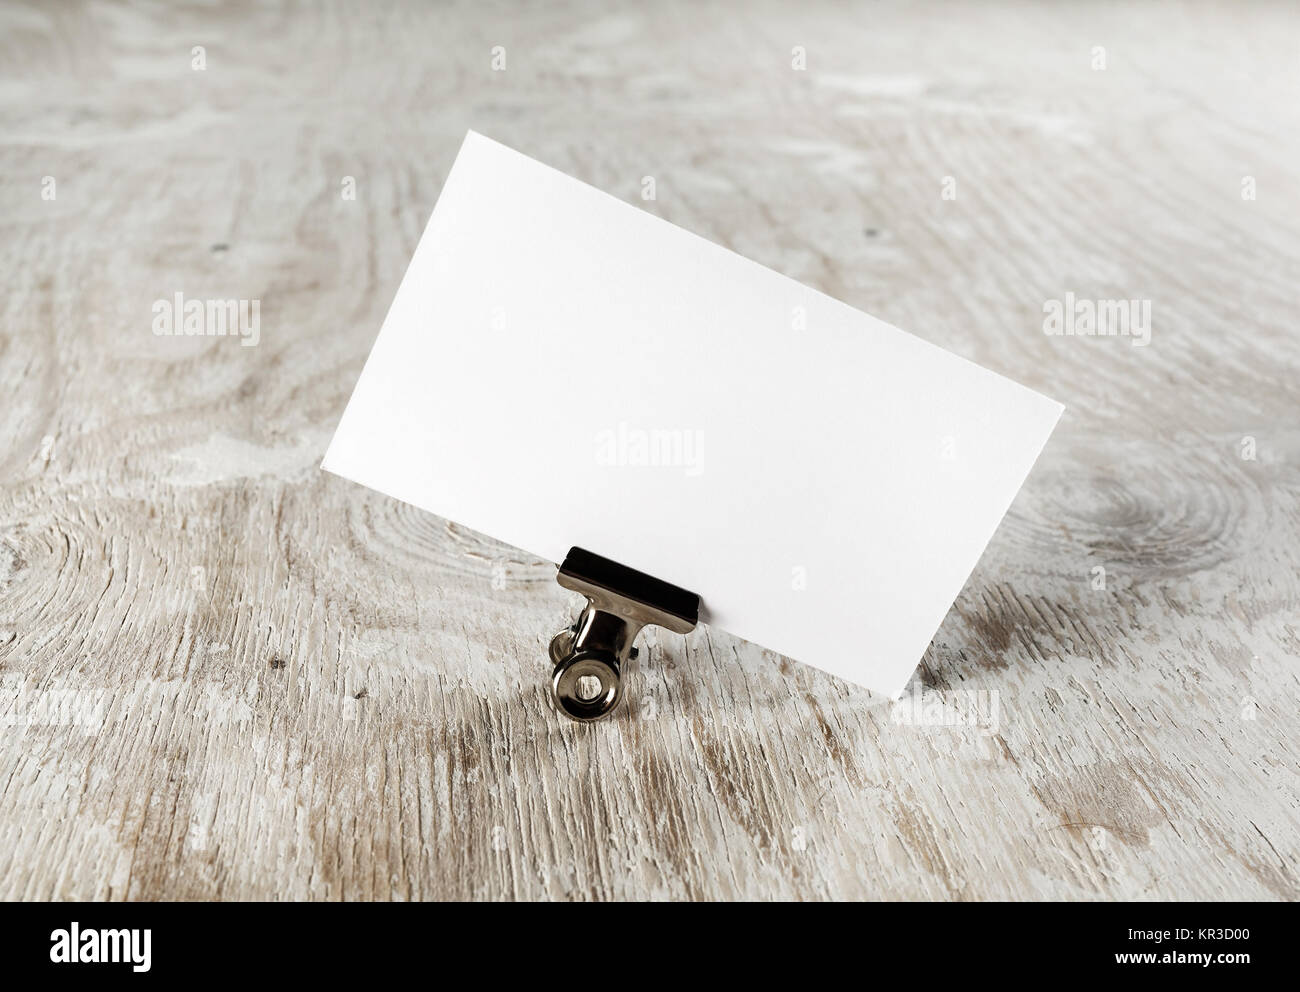 Photo of blank business card - Stock Image